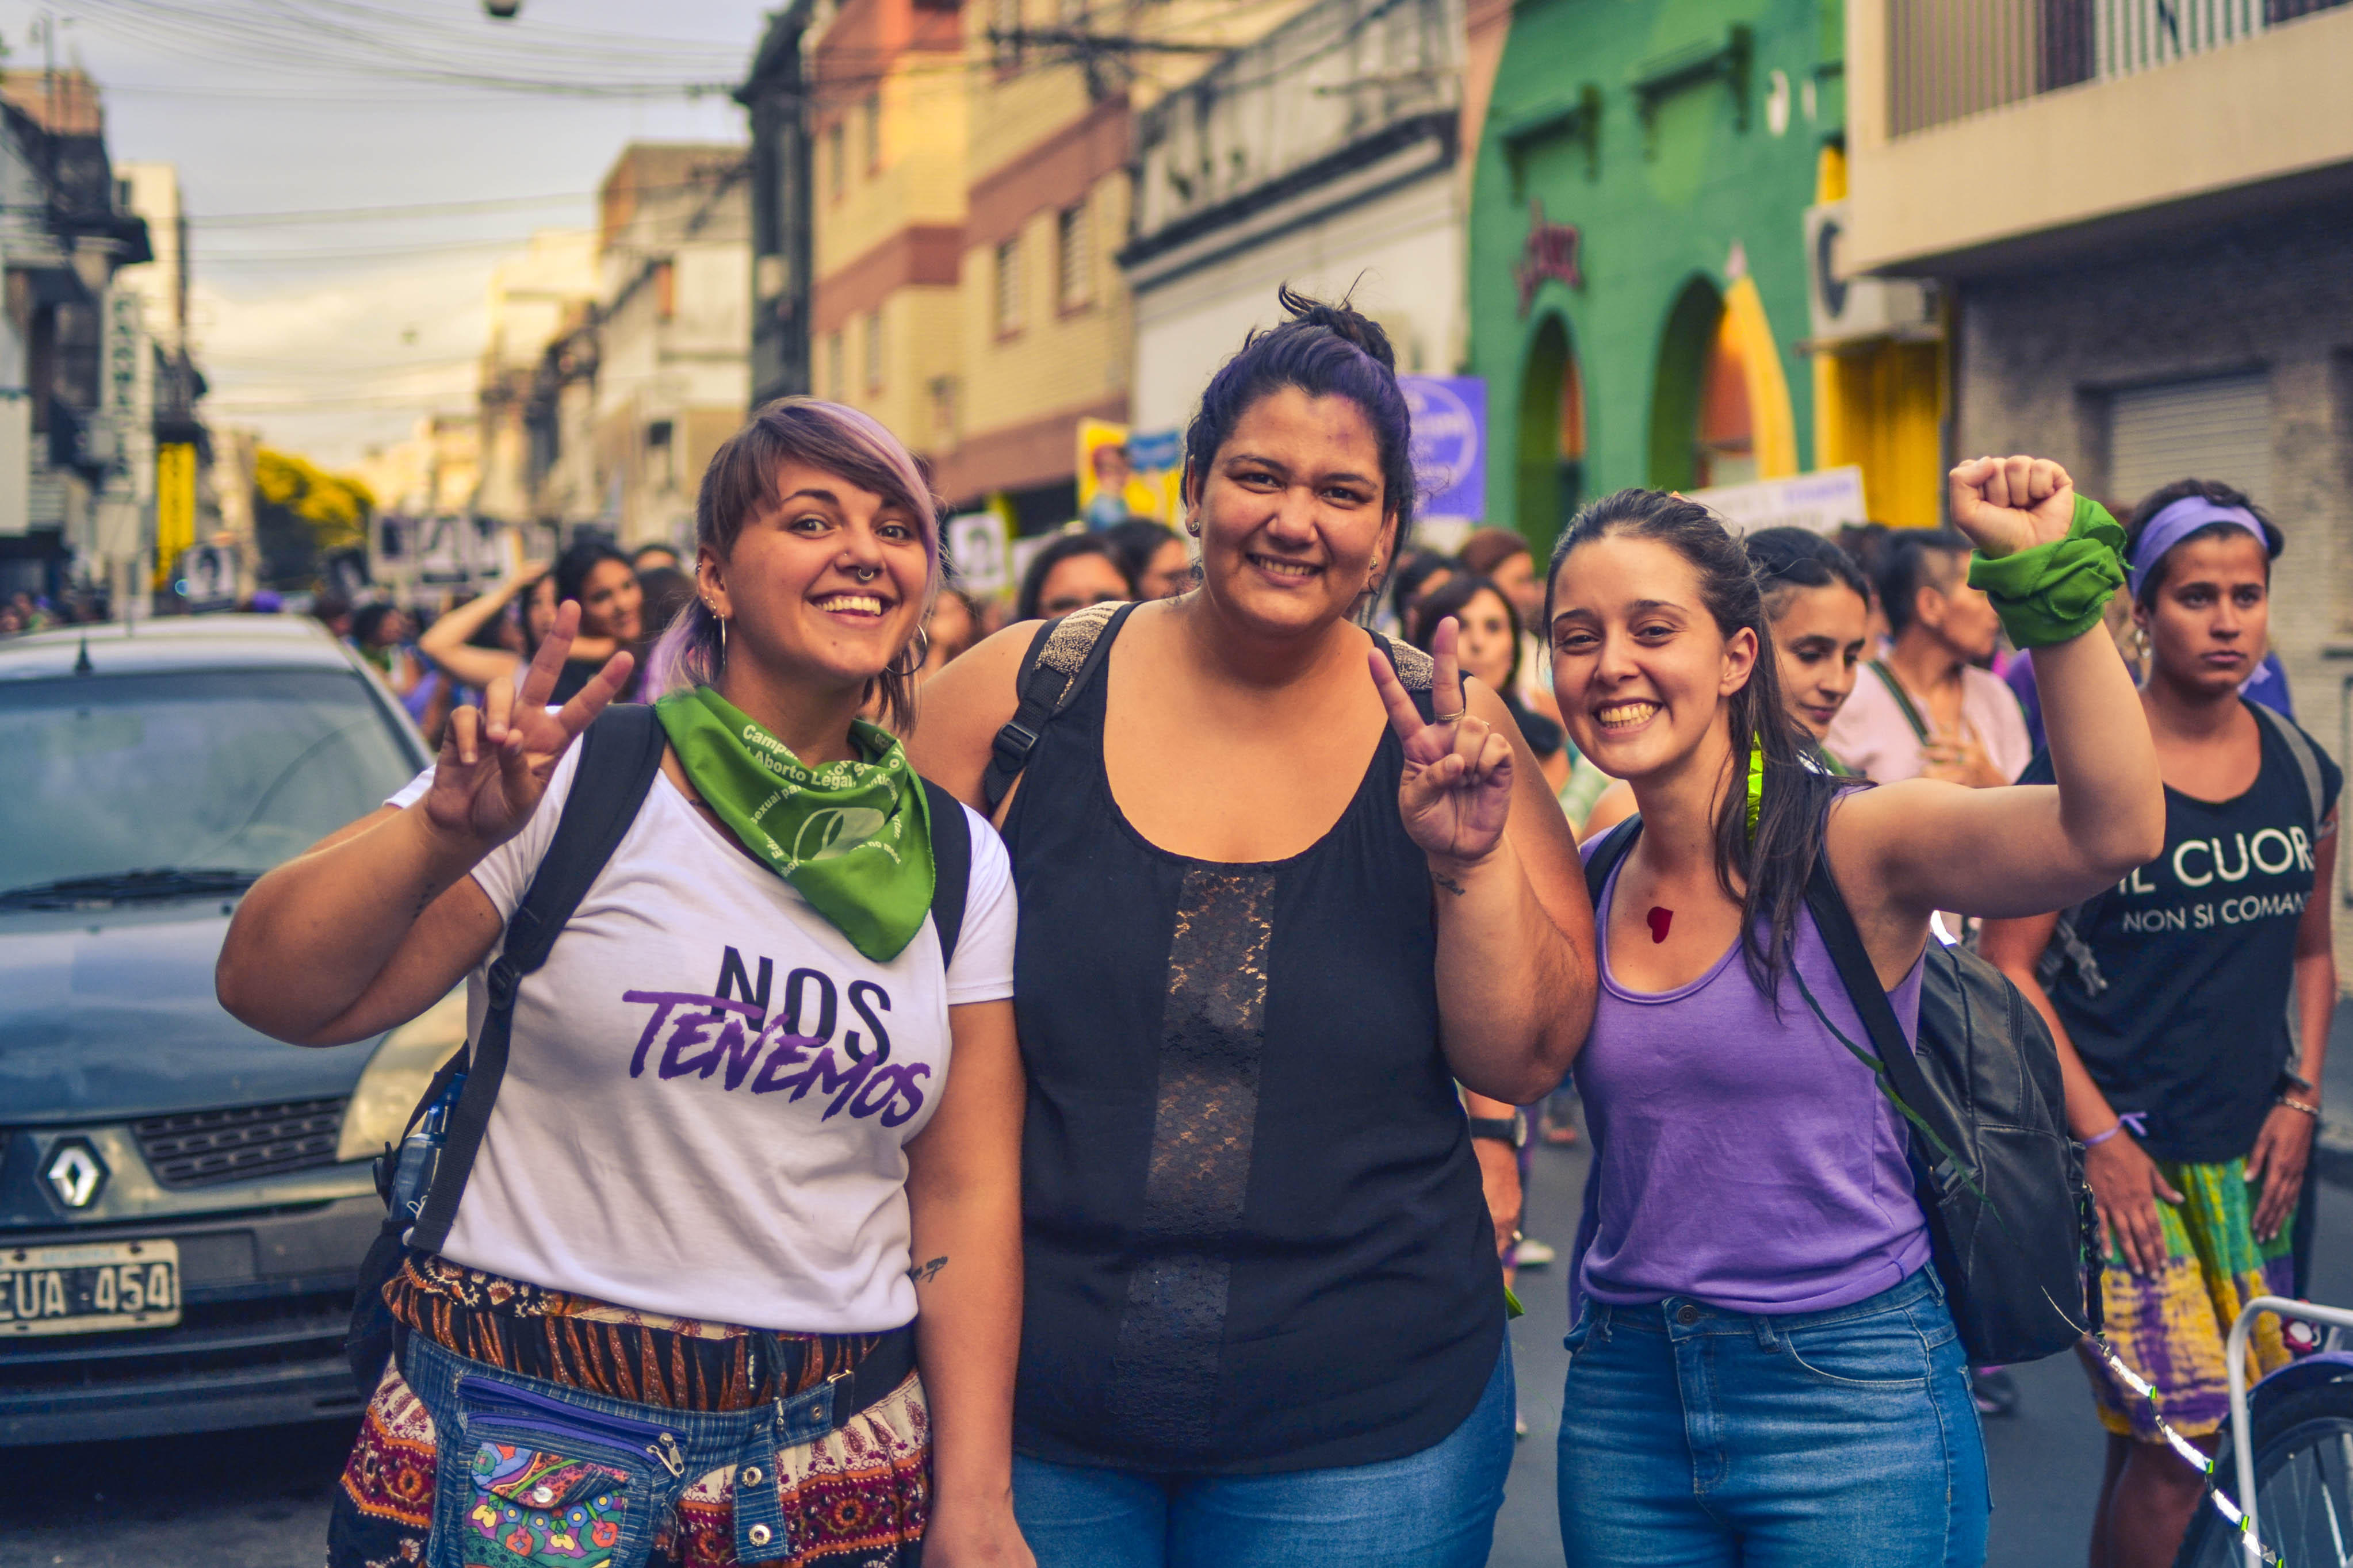 How can feminist urbanism help build more equal cities? Lessons from Latin America